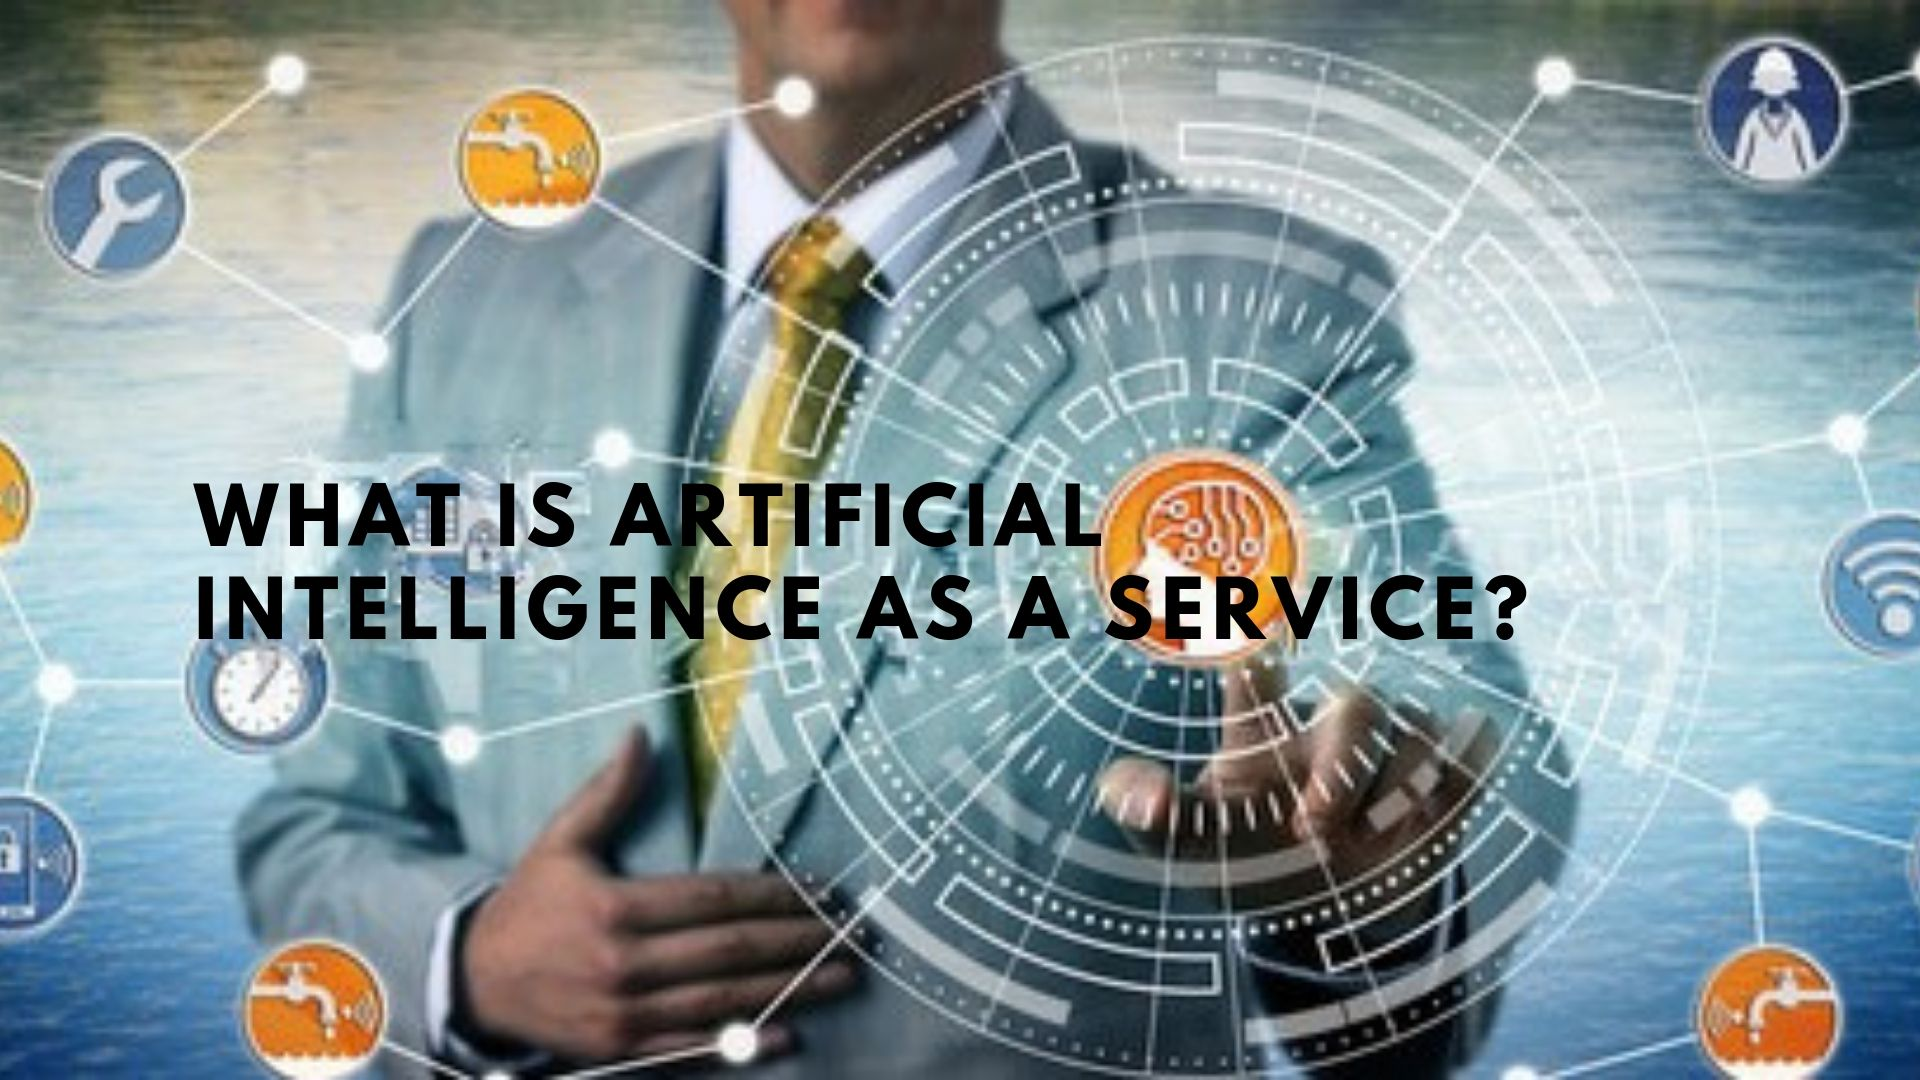 Artificial Intelligence as a Service